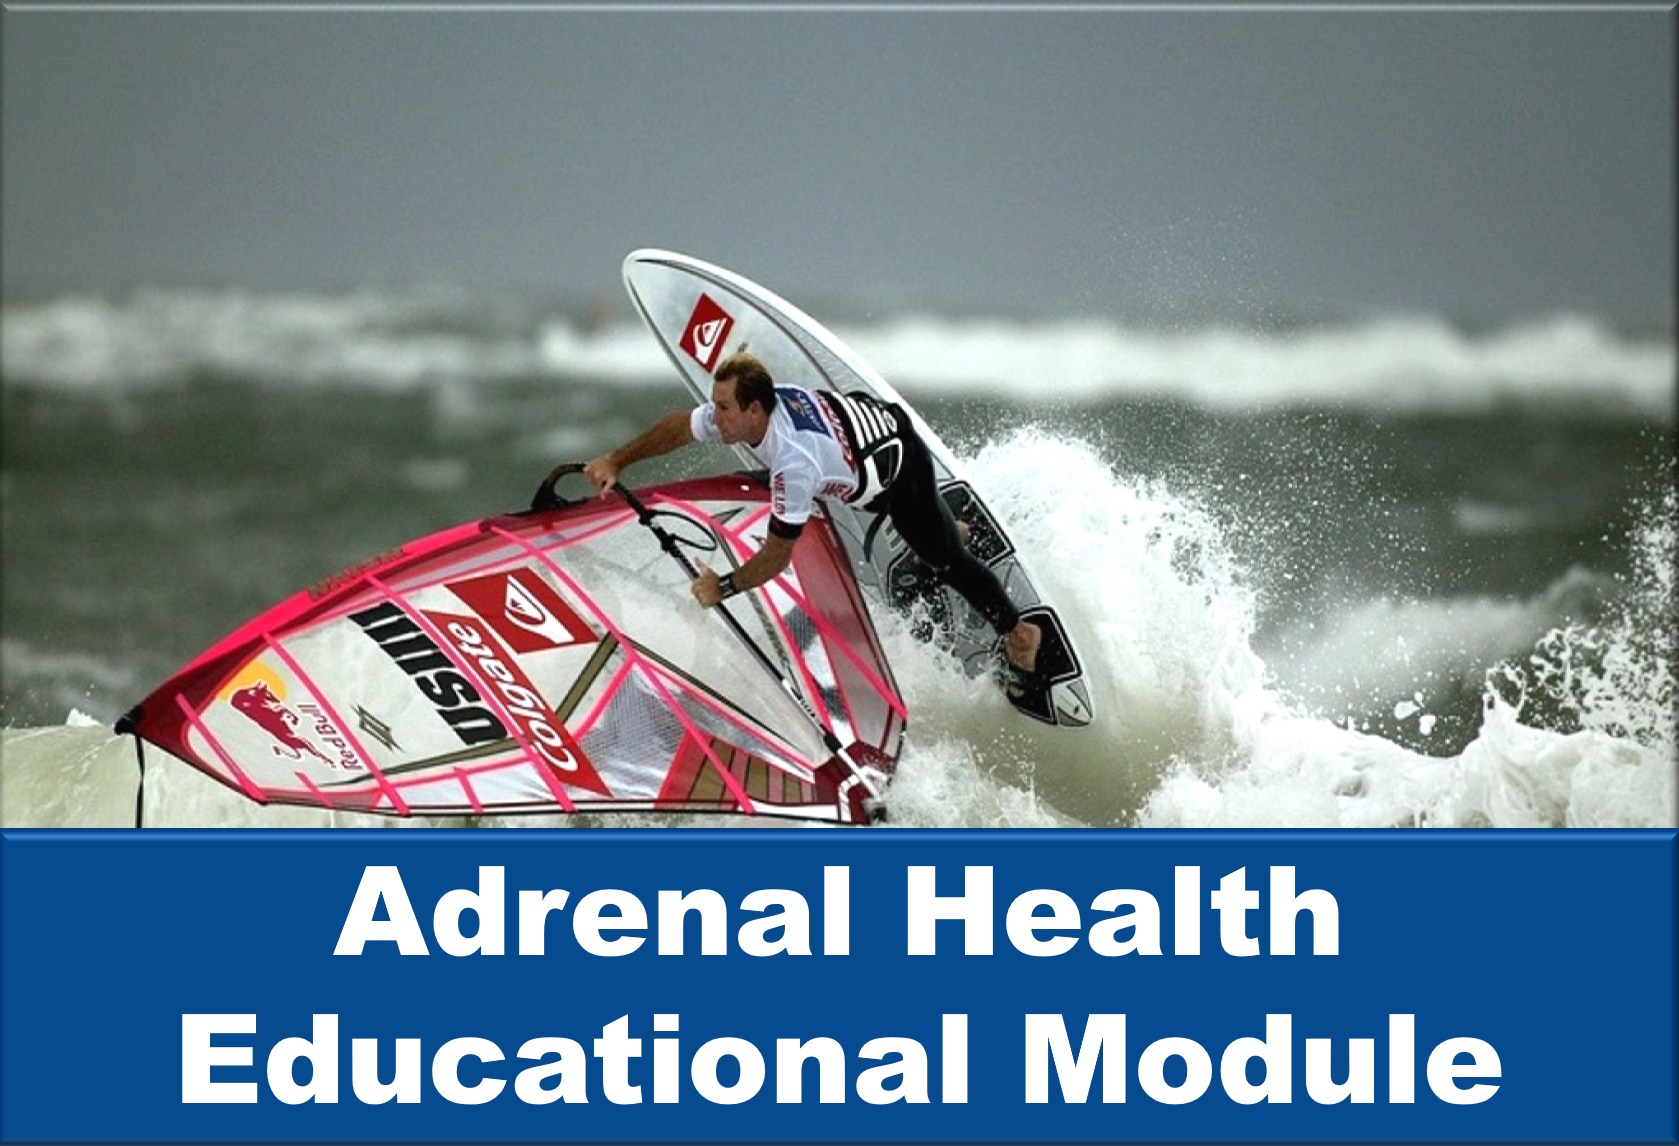 Adrenal Health Educational Module